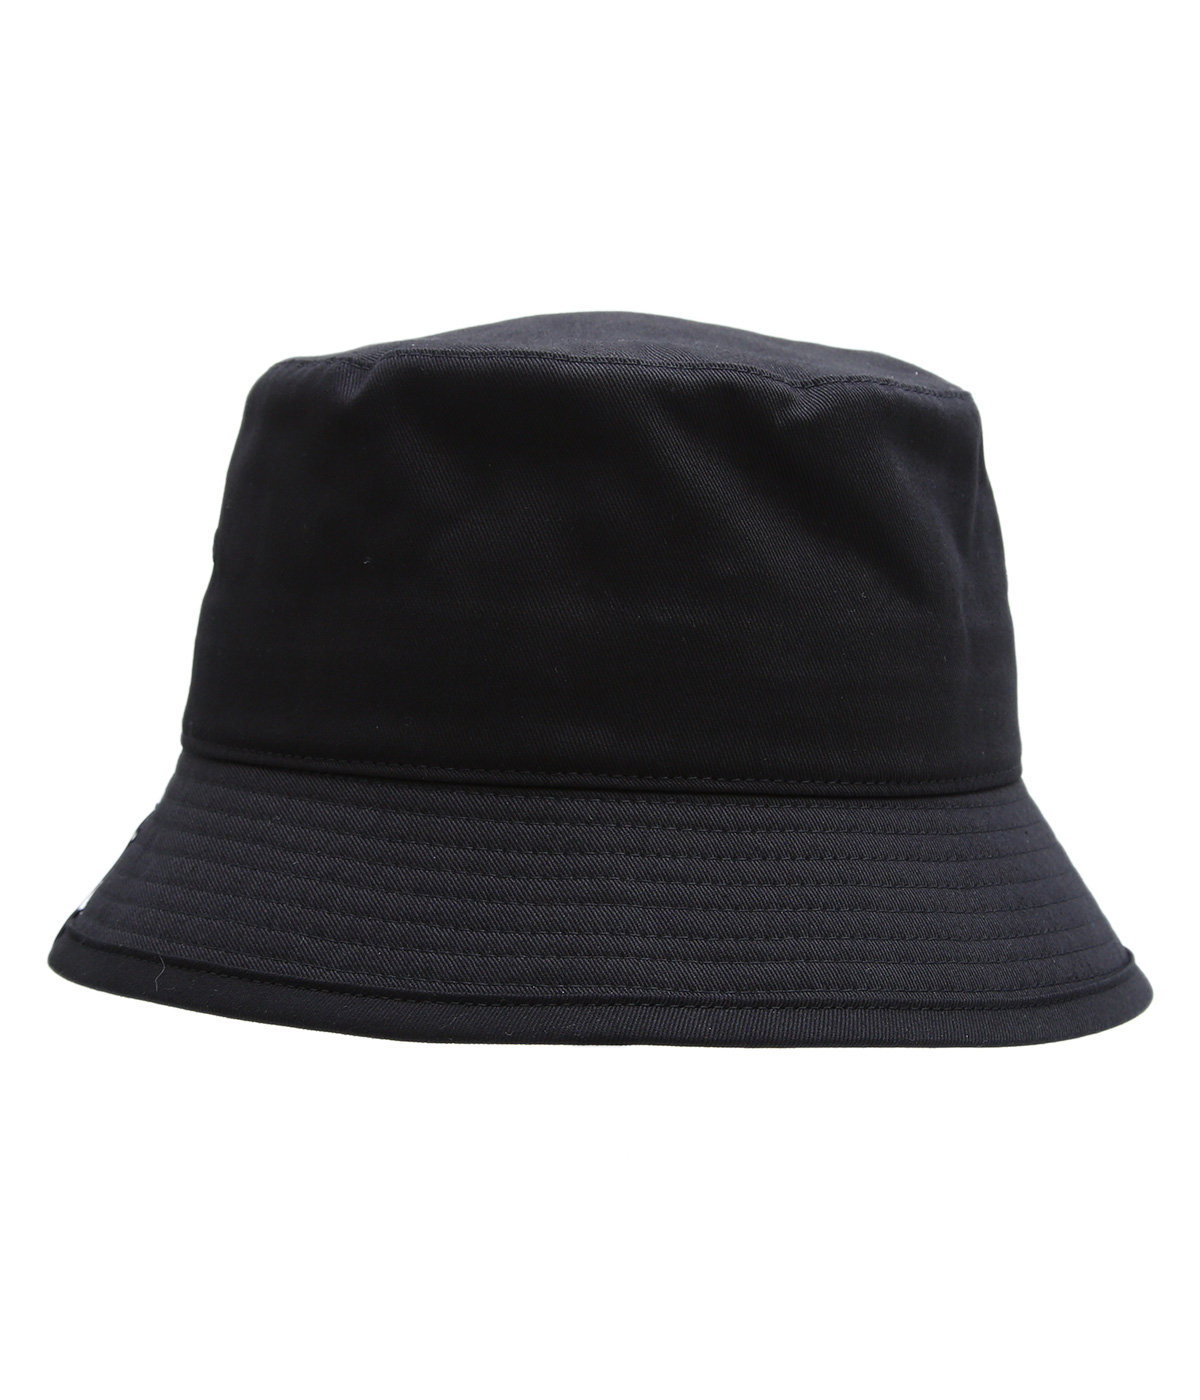 SPY HOP BUCKET HAT